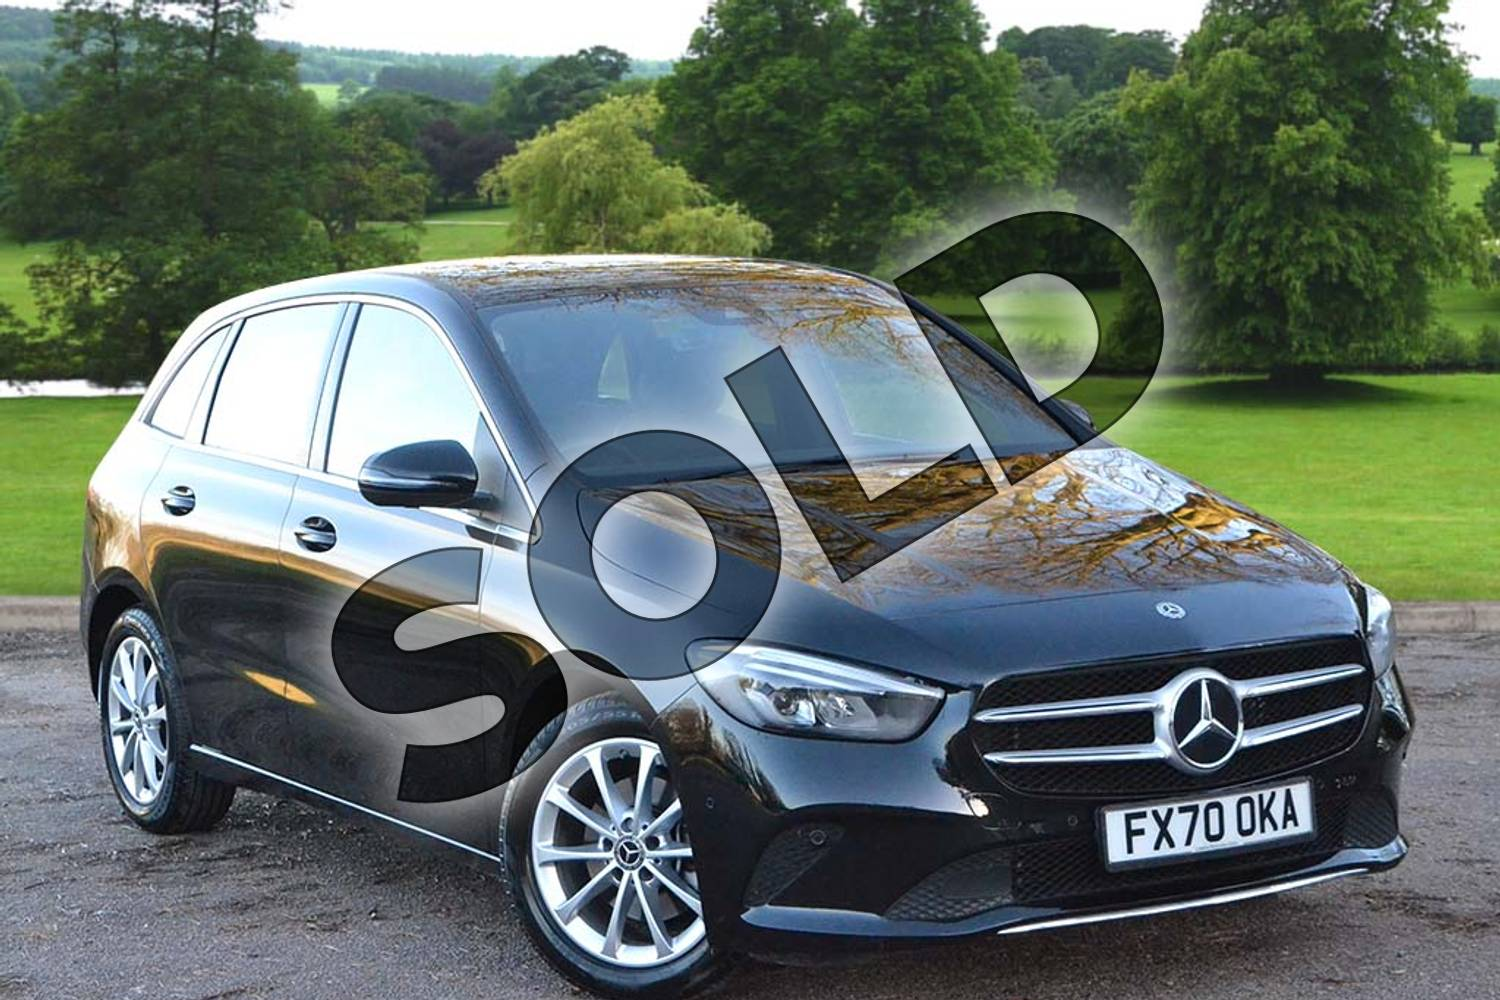 2021 Mercedes-Benz B Class Diesel Hatchback B200d Sport Executive 5dr Auto in Cosmos Black Metallic at Mercedes-Benz of Grimsby